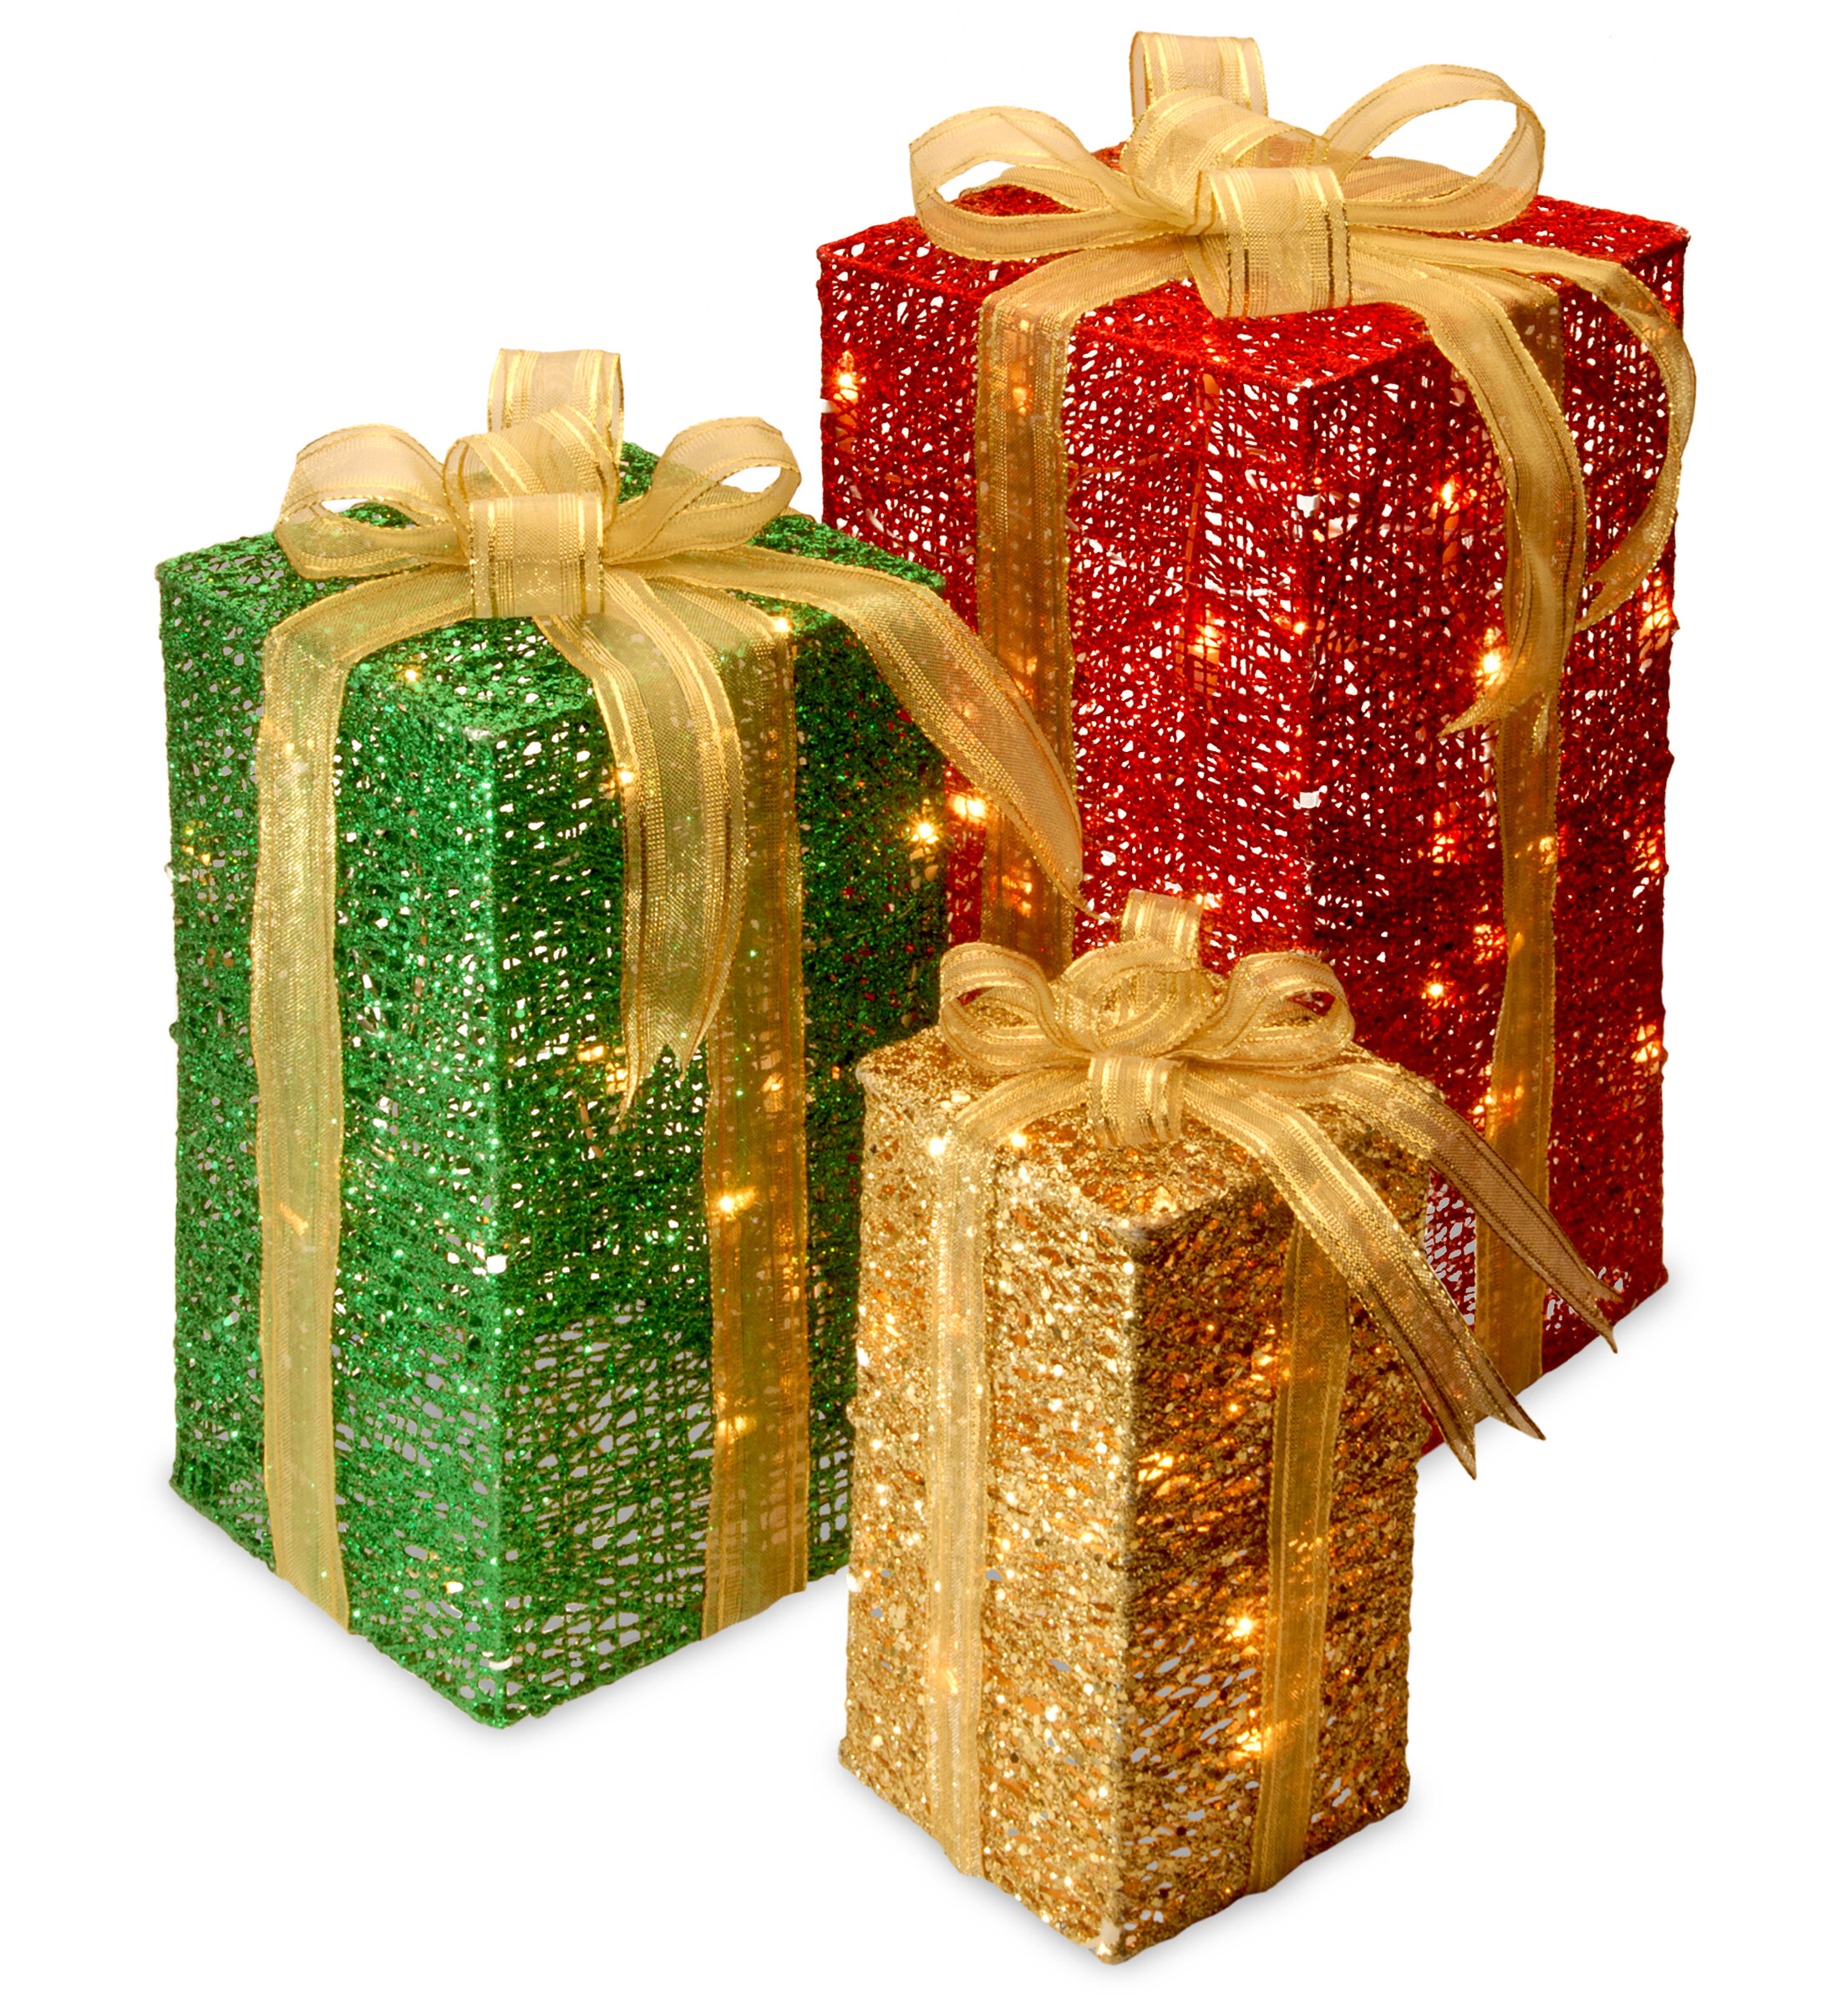 National Tree Co. 3 Piece Sisal Gift Box Lighted Display & Reviews ...